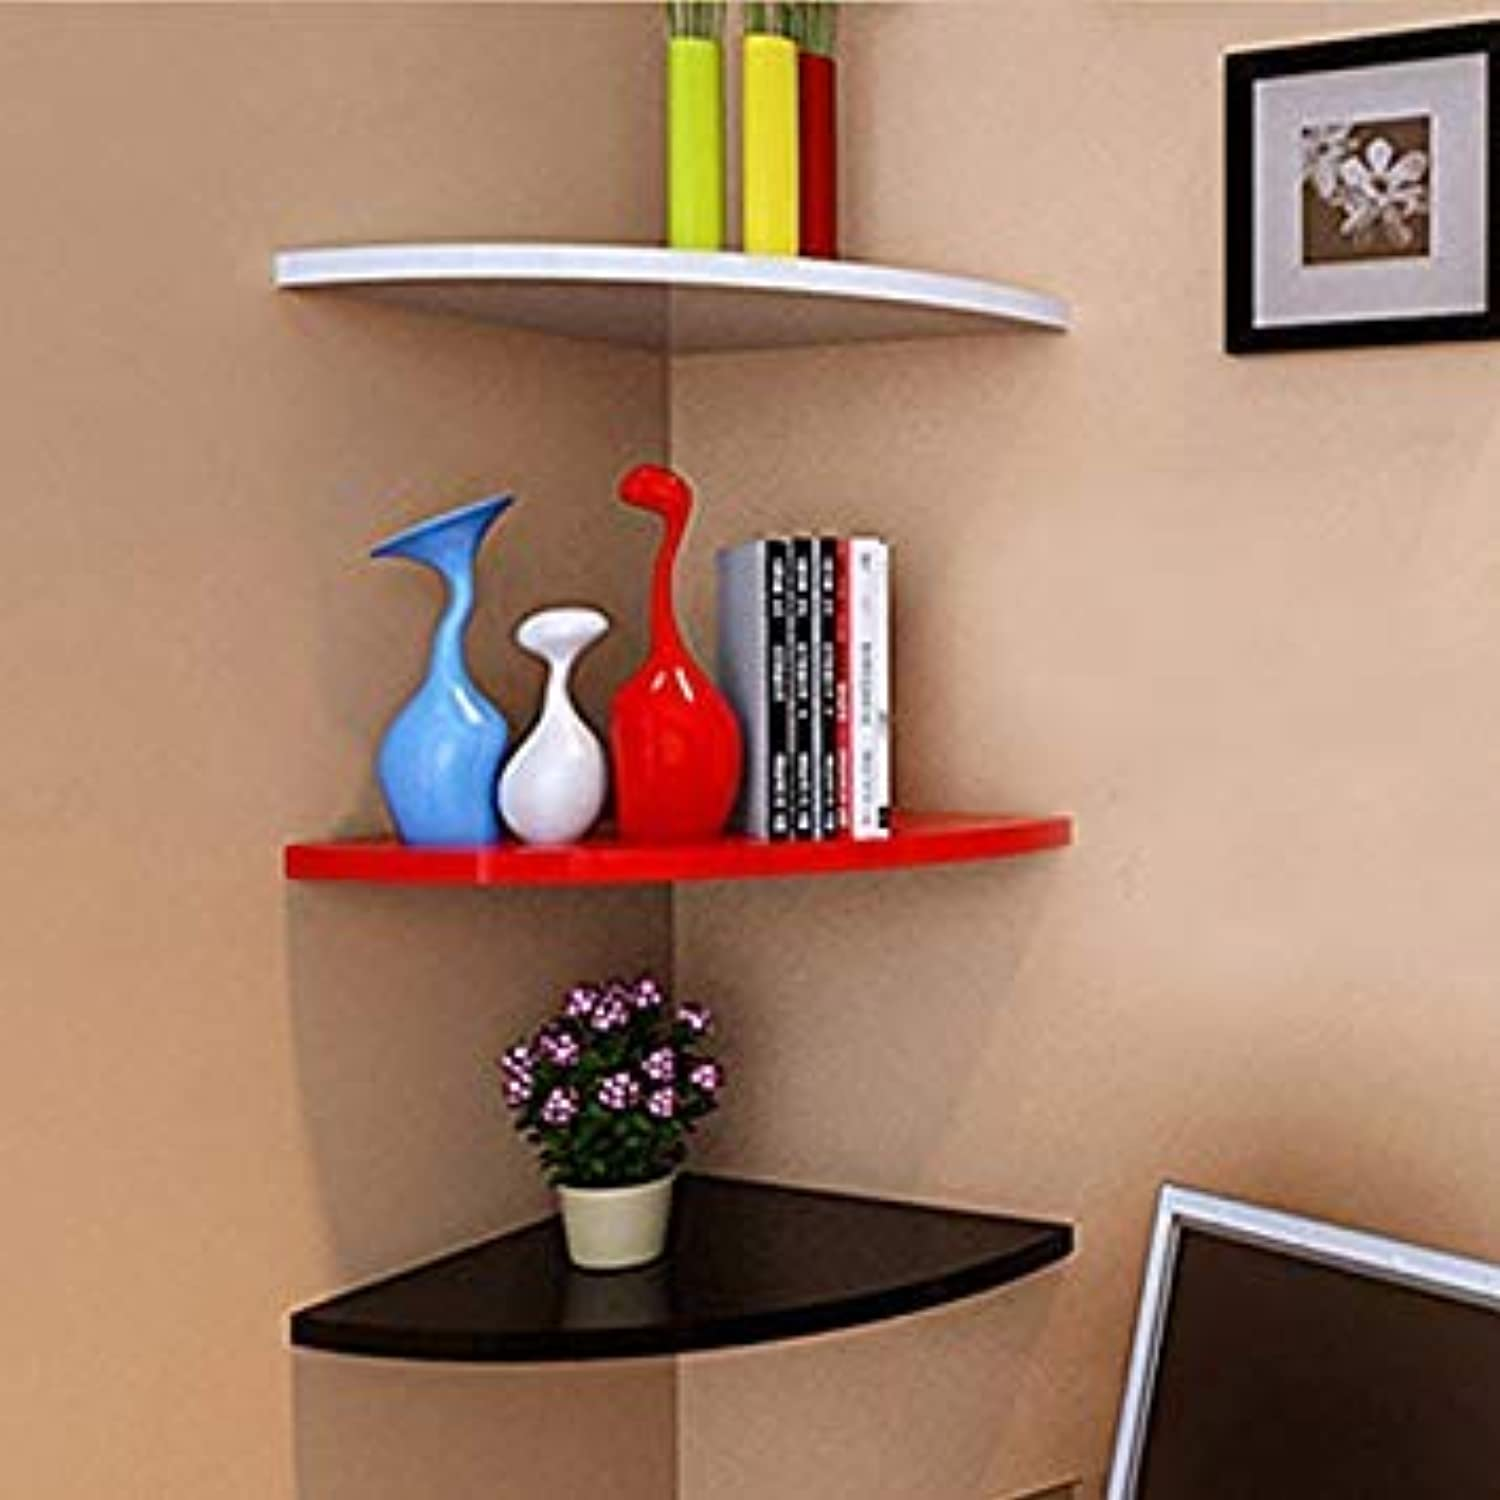 Generic Red   1pcs Creative Partition Frame Wall Rack Wall Bookshelf Floating Shelves Sitting Room Corner Shelves Decorative